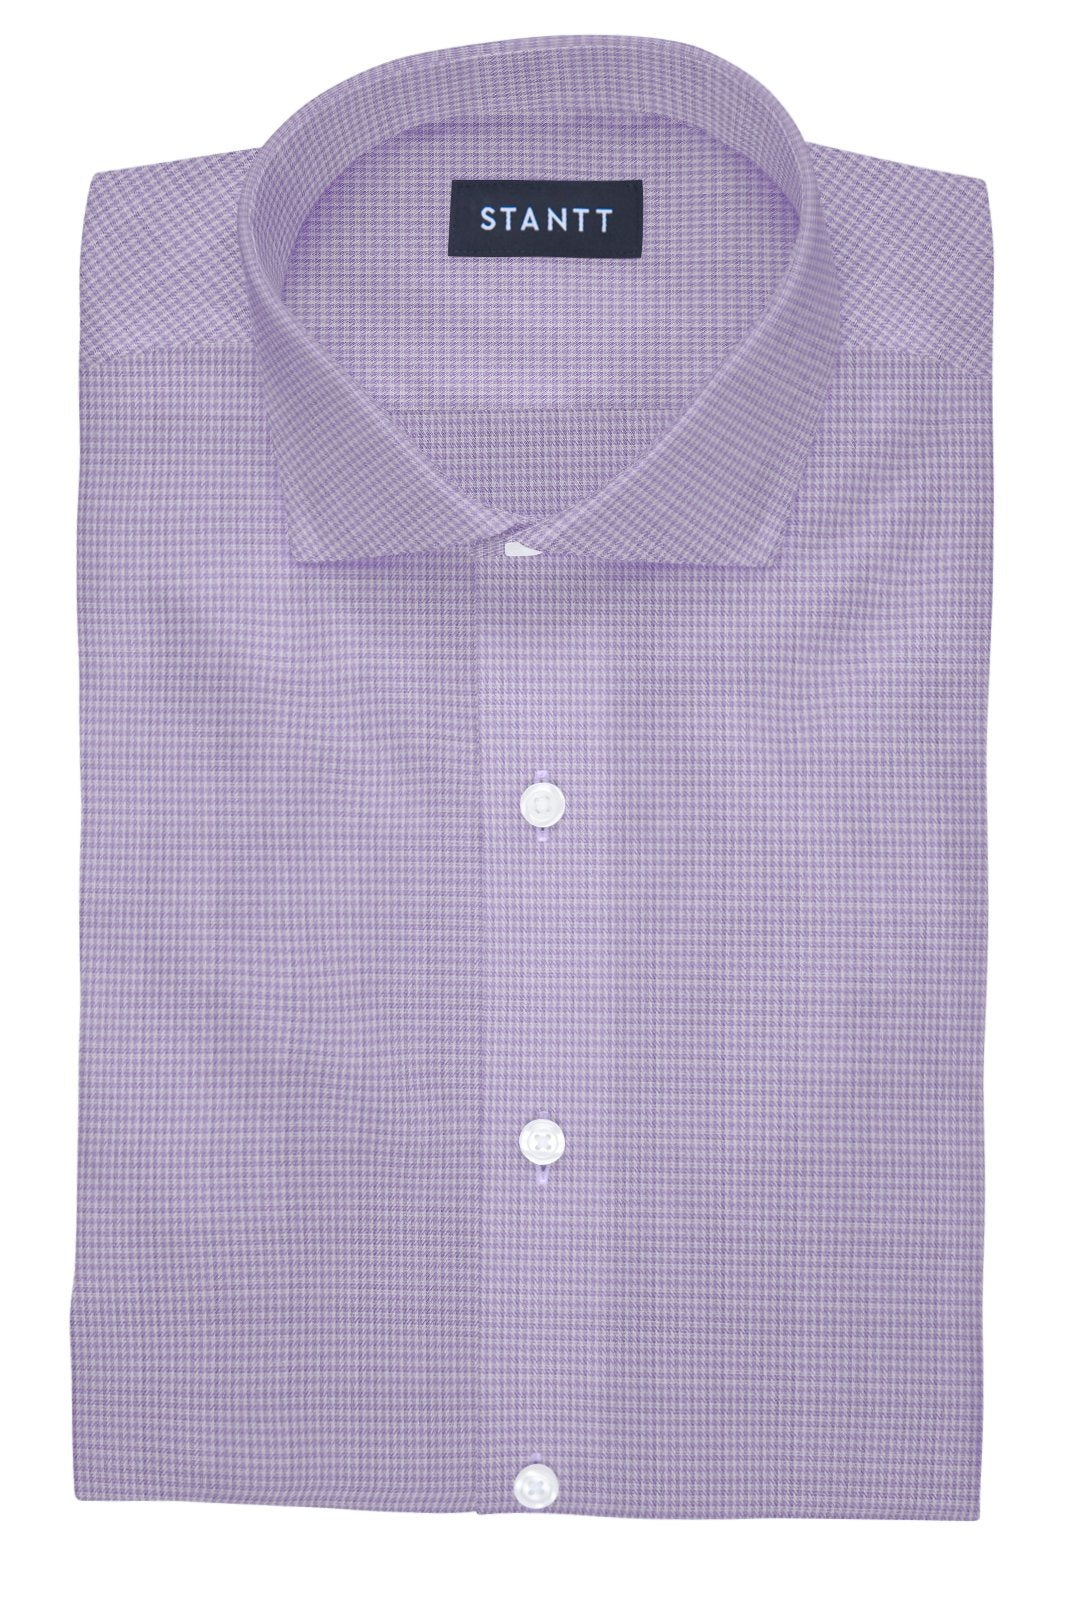 Heather Purple Houndstooth: Cutaway Collar, French Cuff